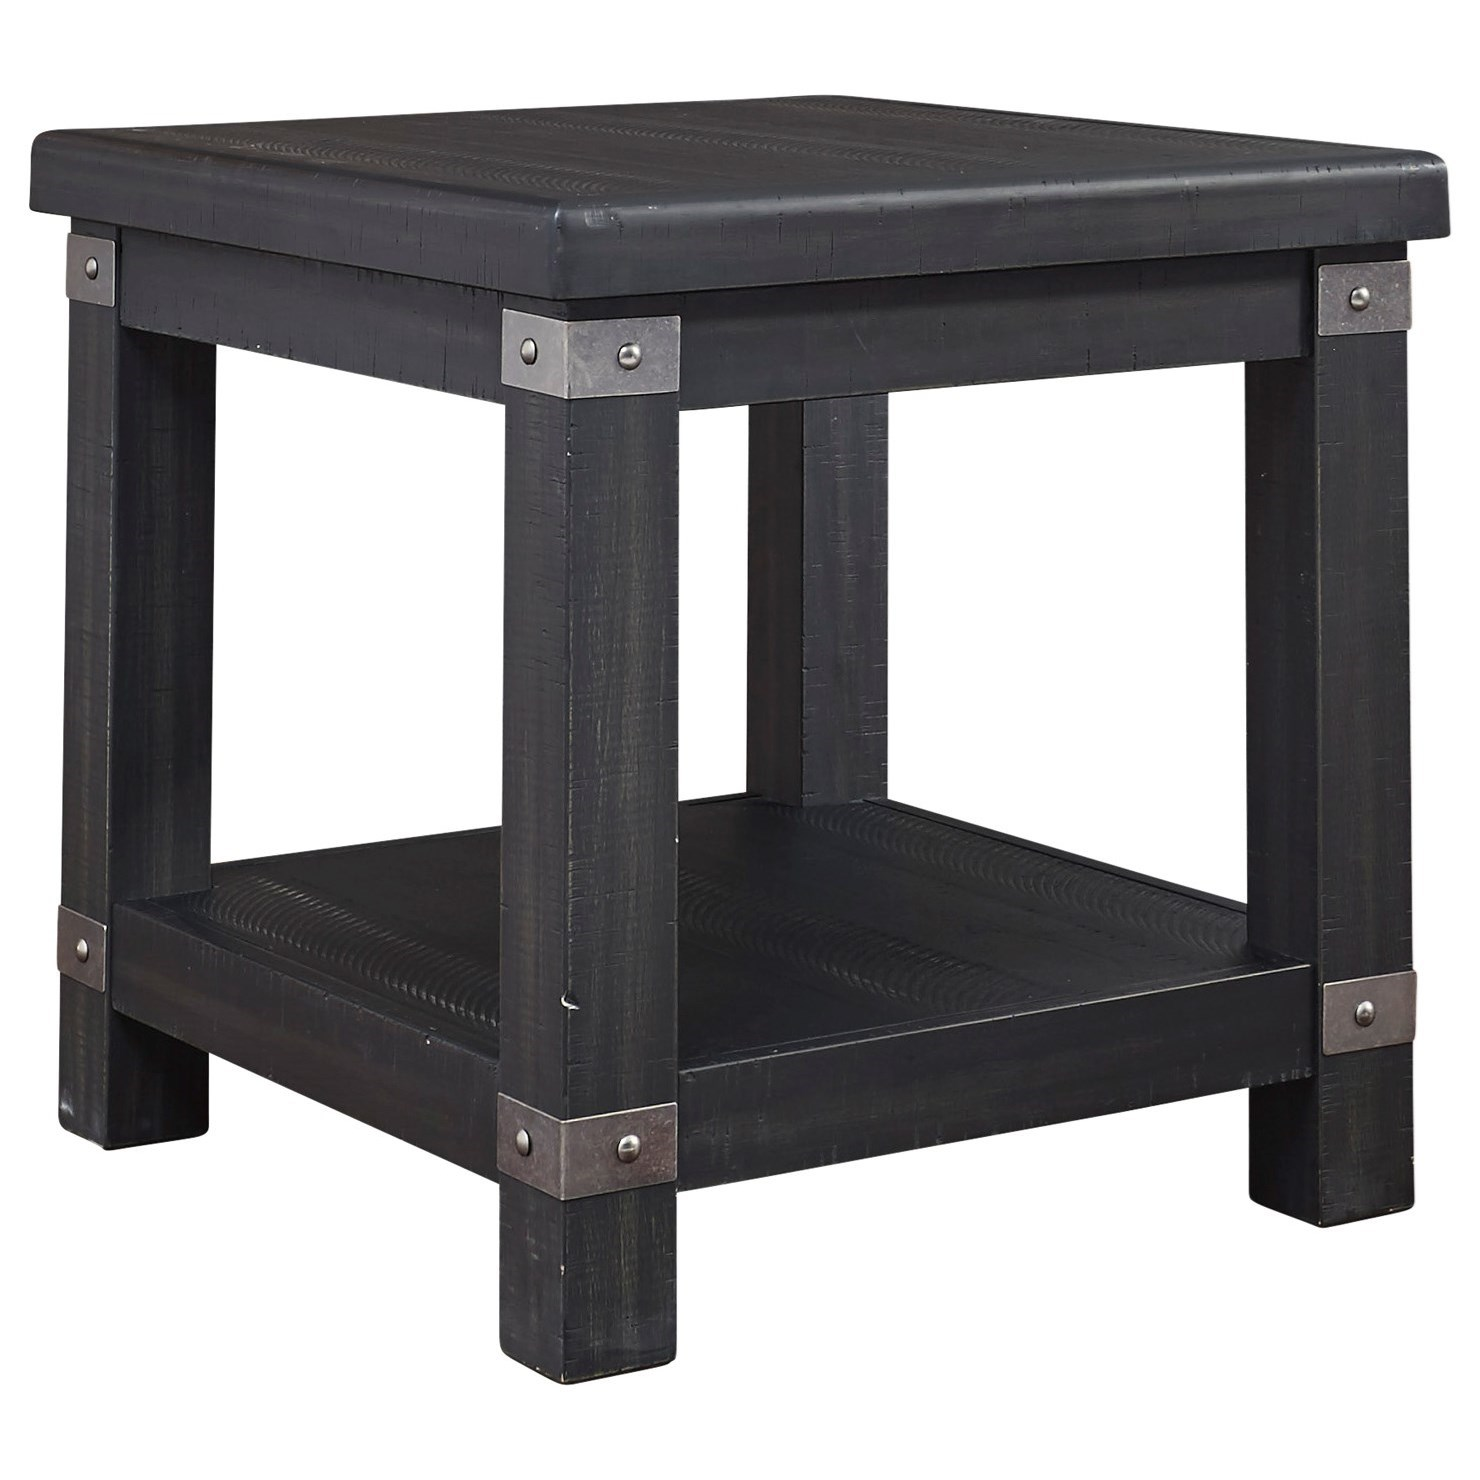 Delmar Rectangular End Table by Benchcraft at Virginia Furniture Market